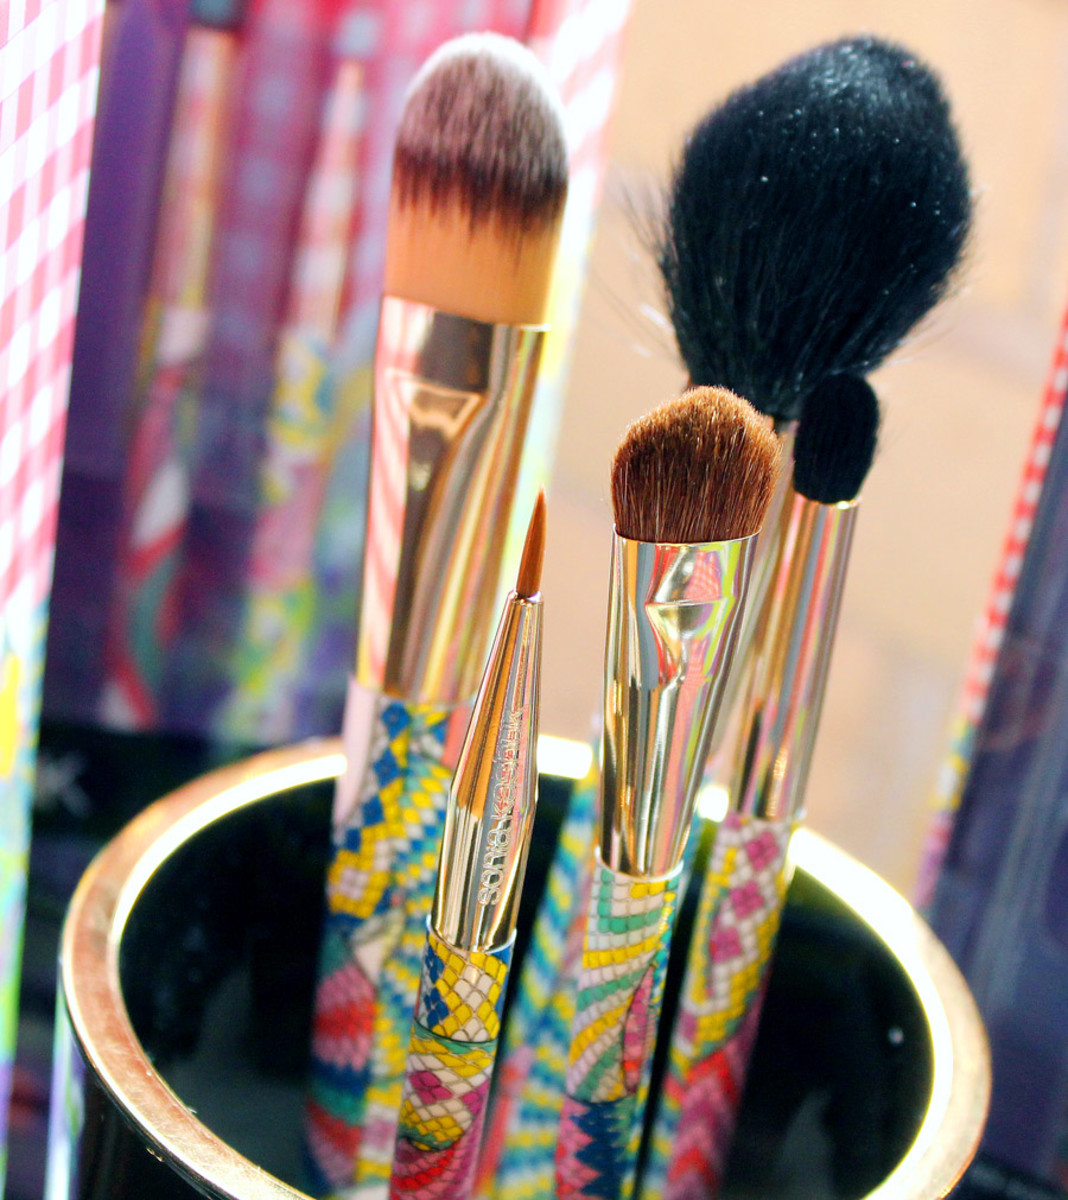 Sonia Kashuk Spring 2014_Sonia Kashuk Brush Couture Five-Piece Brush Set